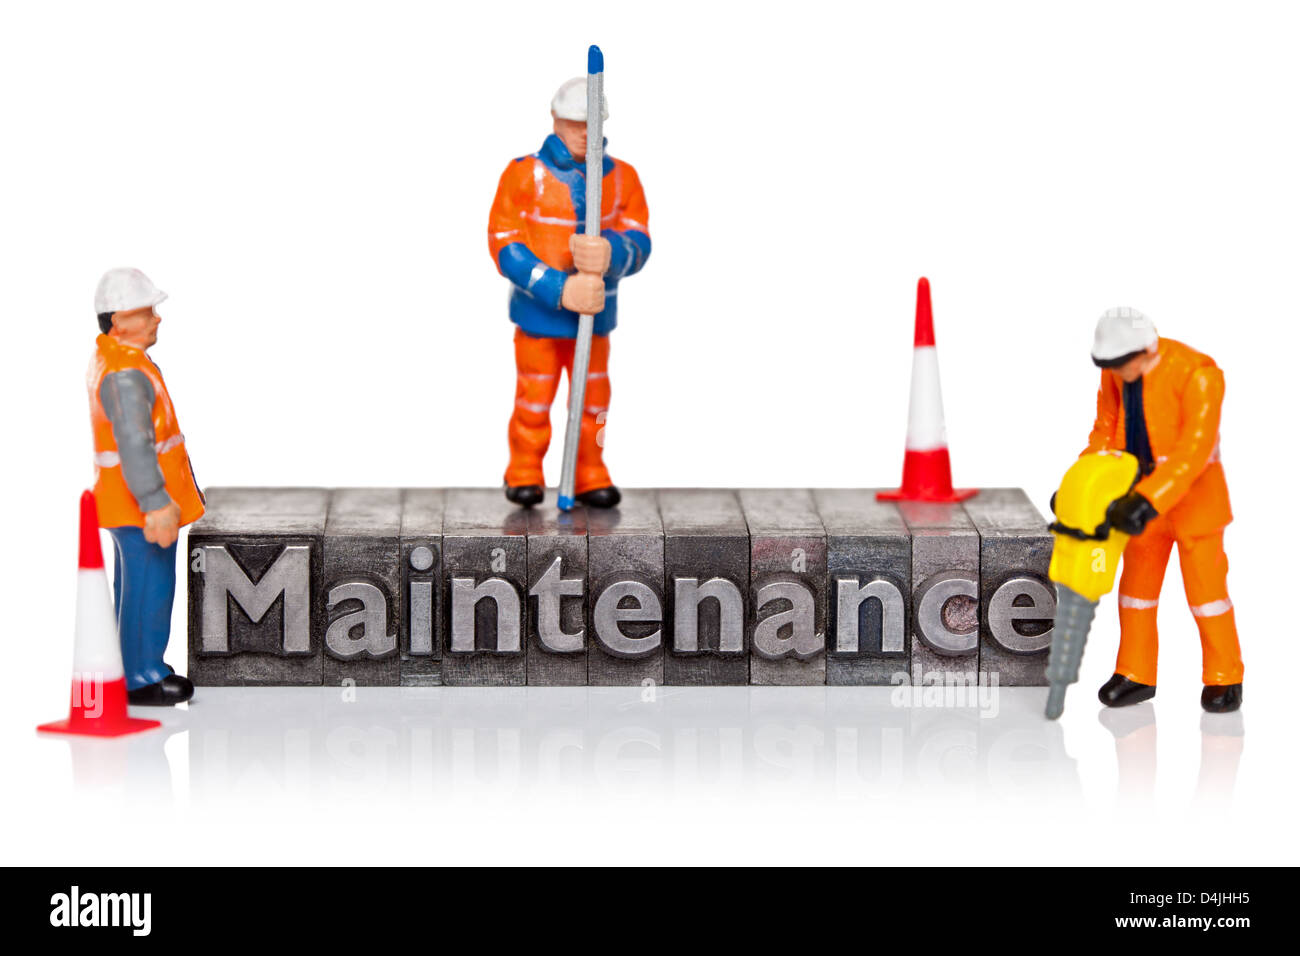 Hand painted miniature workmen figurines and the word Maintenance in old metal letterpress isolated on a white background. - Stock Image